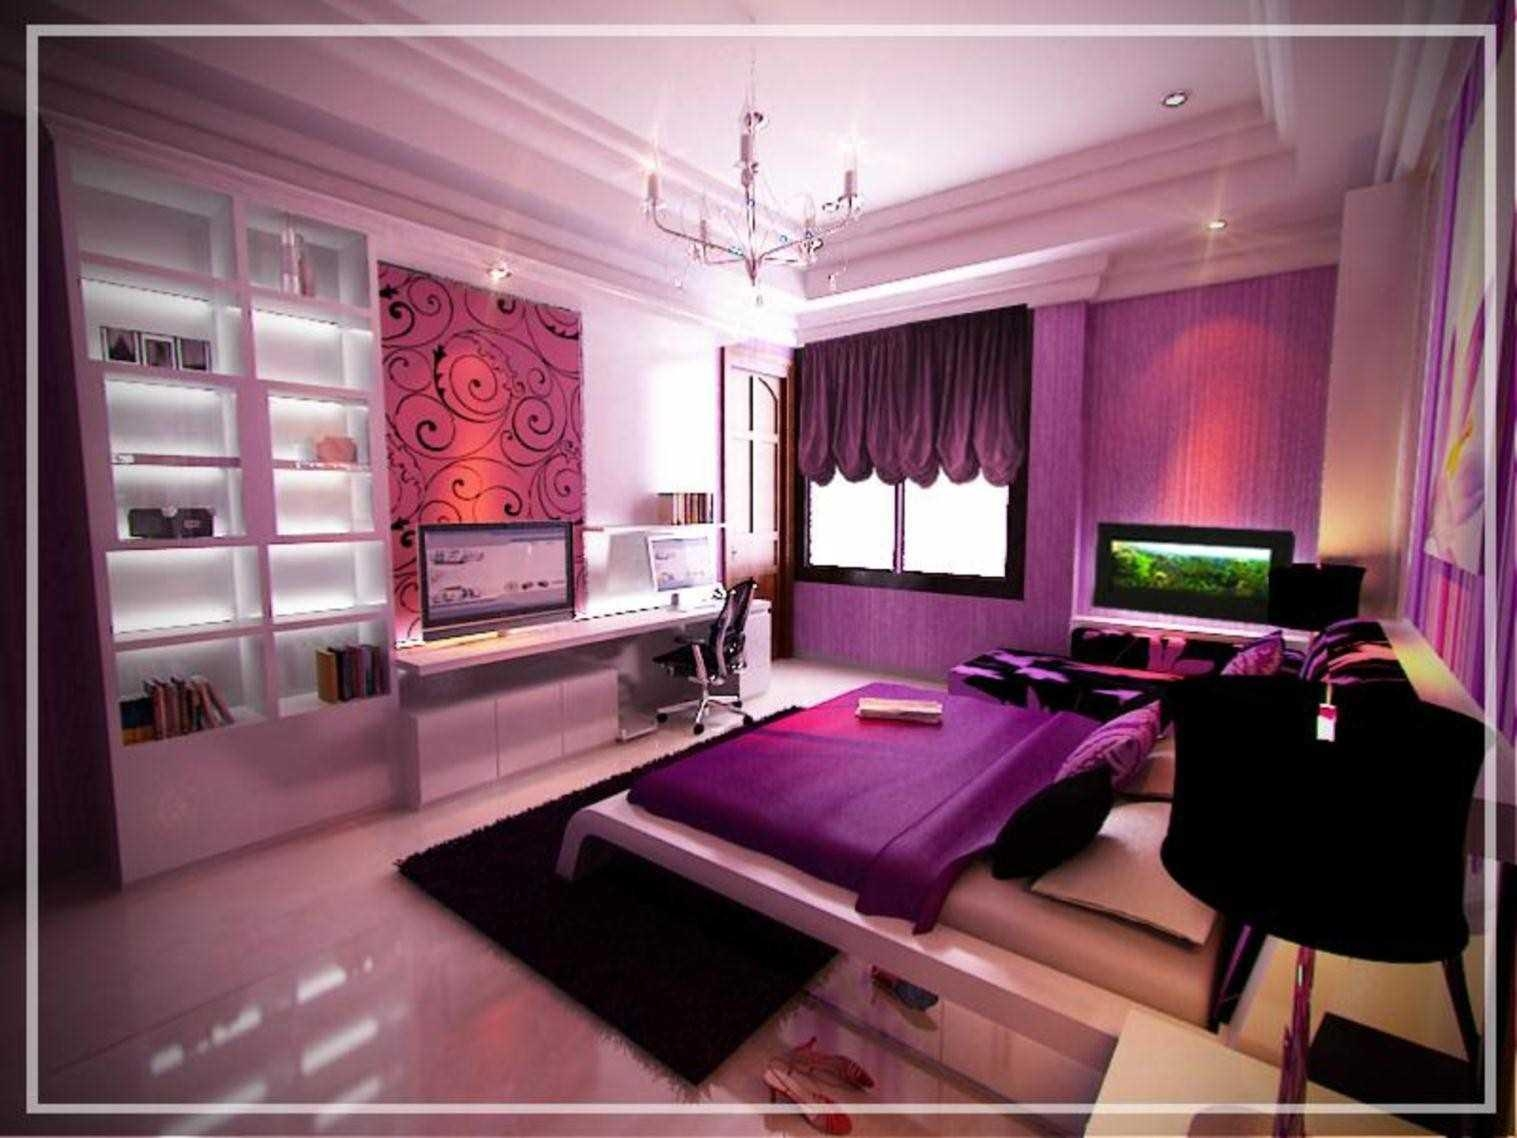 Bathroom : Color Warm Teen Decor Girls Wall Art Pictures For Teen Pertaining To Purple Bathroom Wall Art (Image 1 of 20)